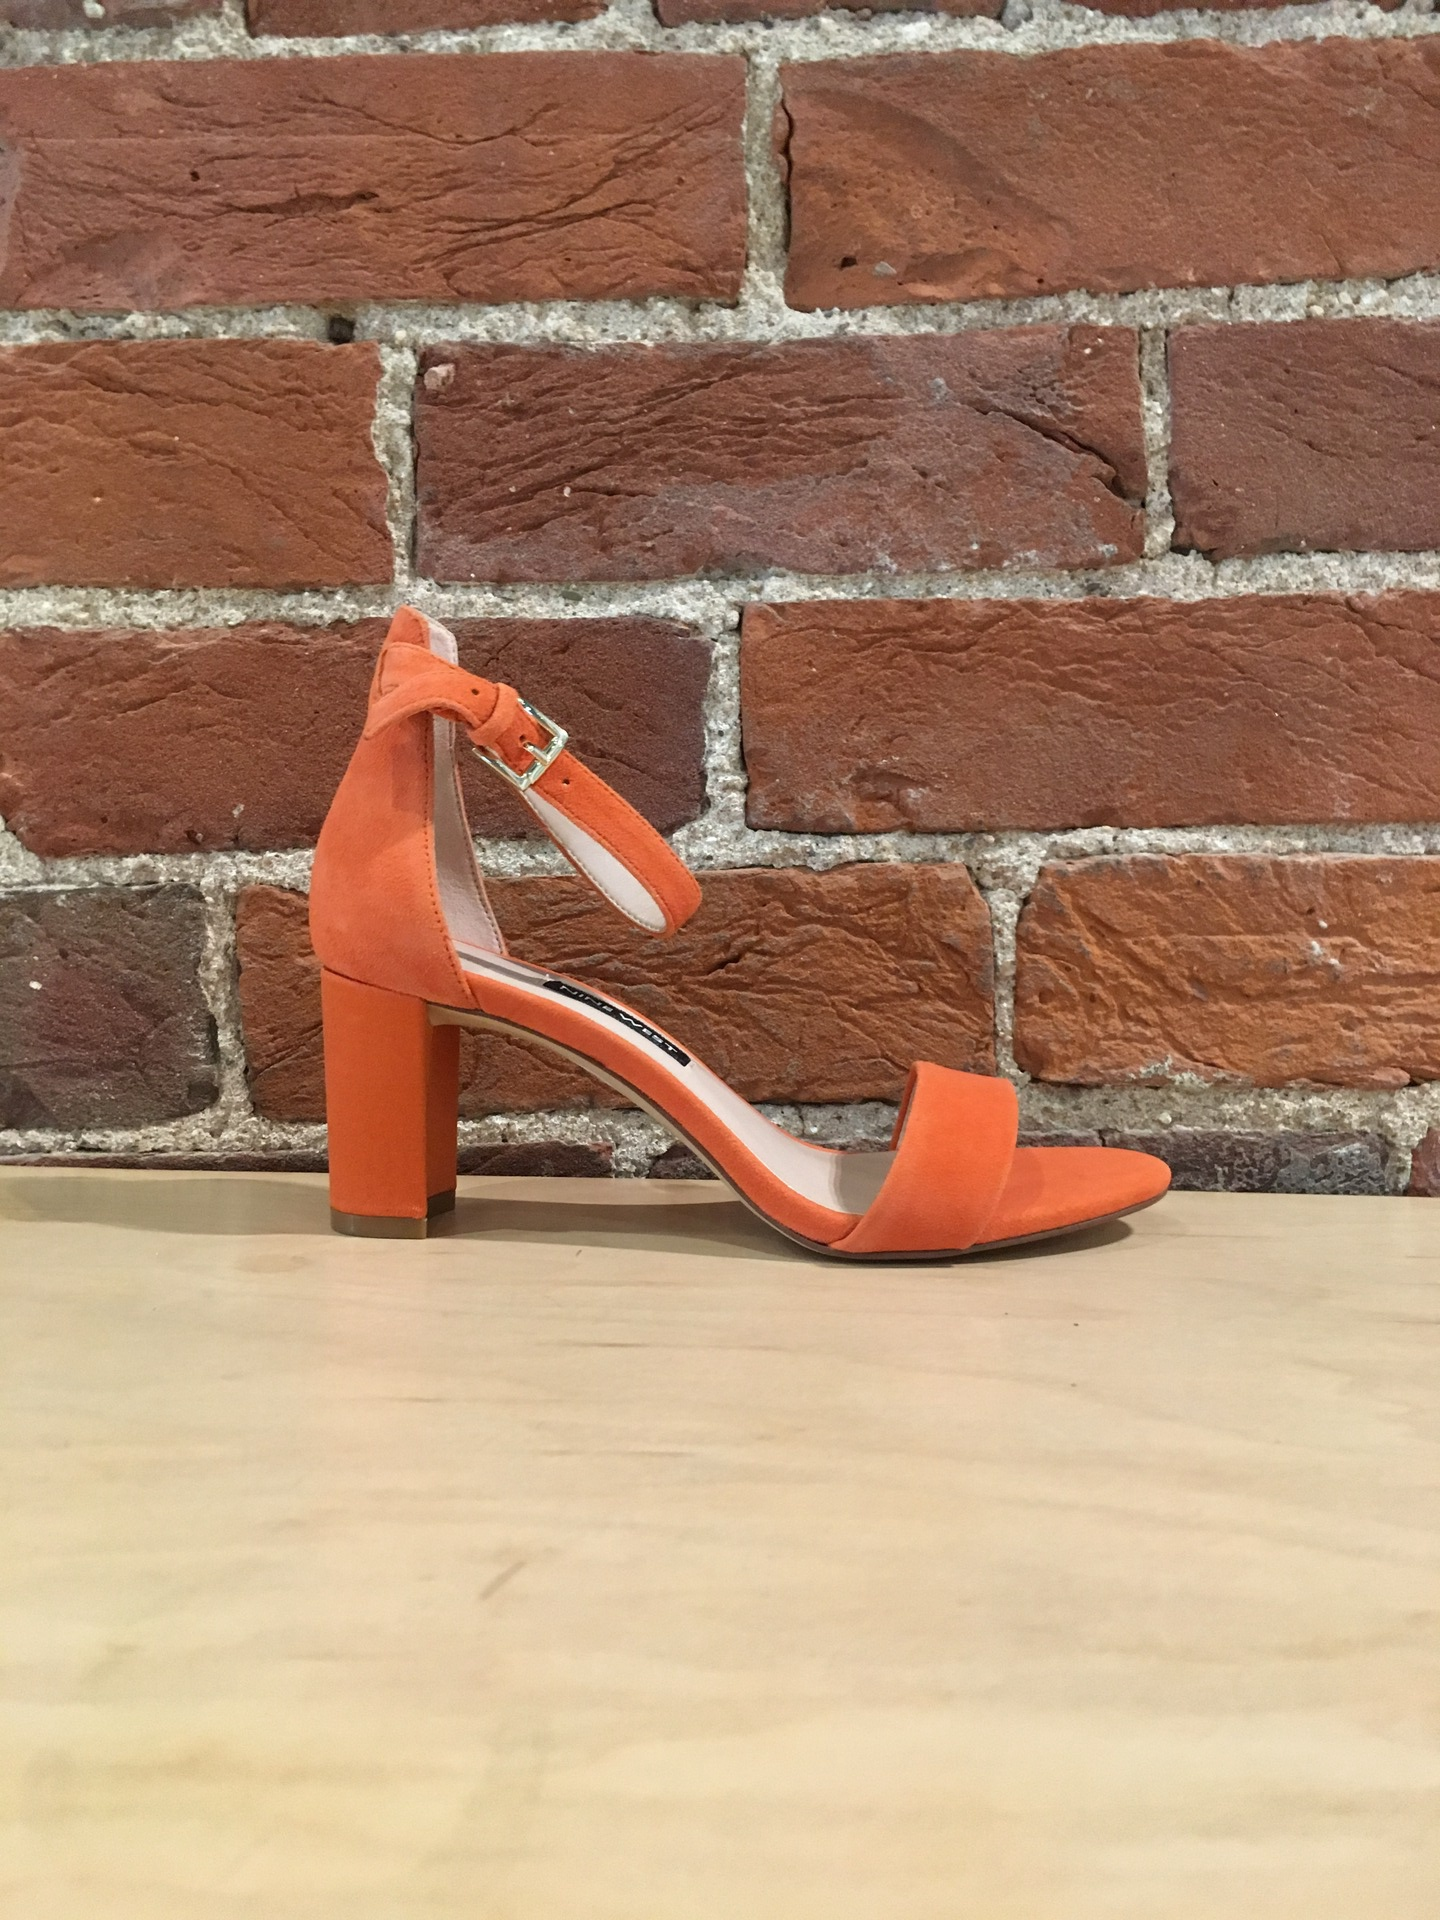 NINE WEST - PRUCE IN ORANGE